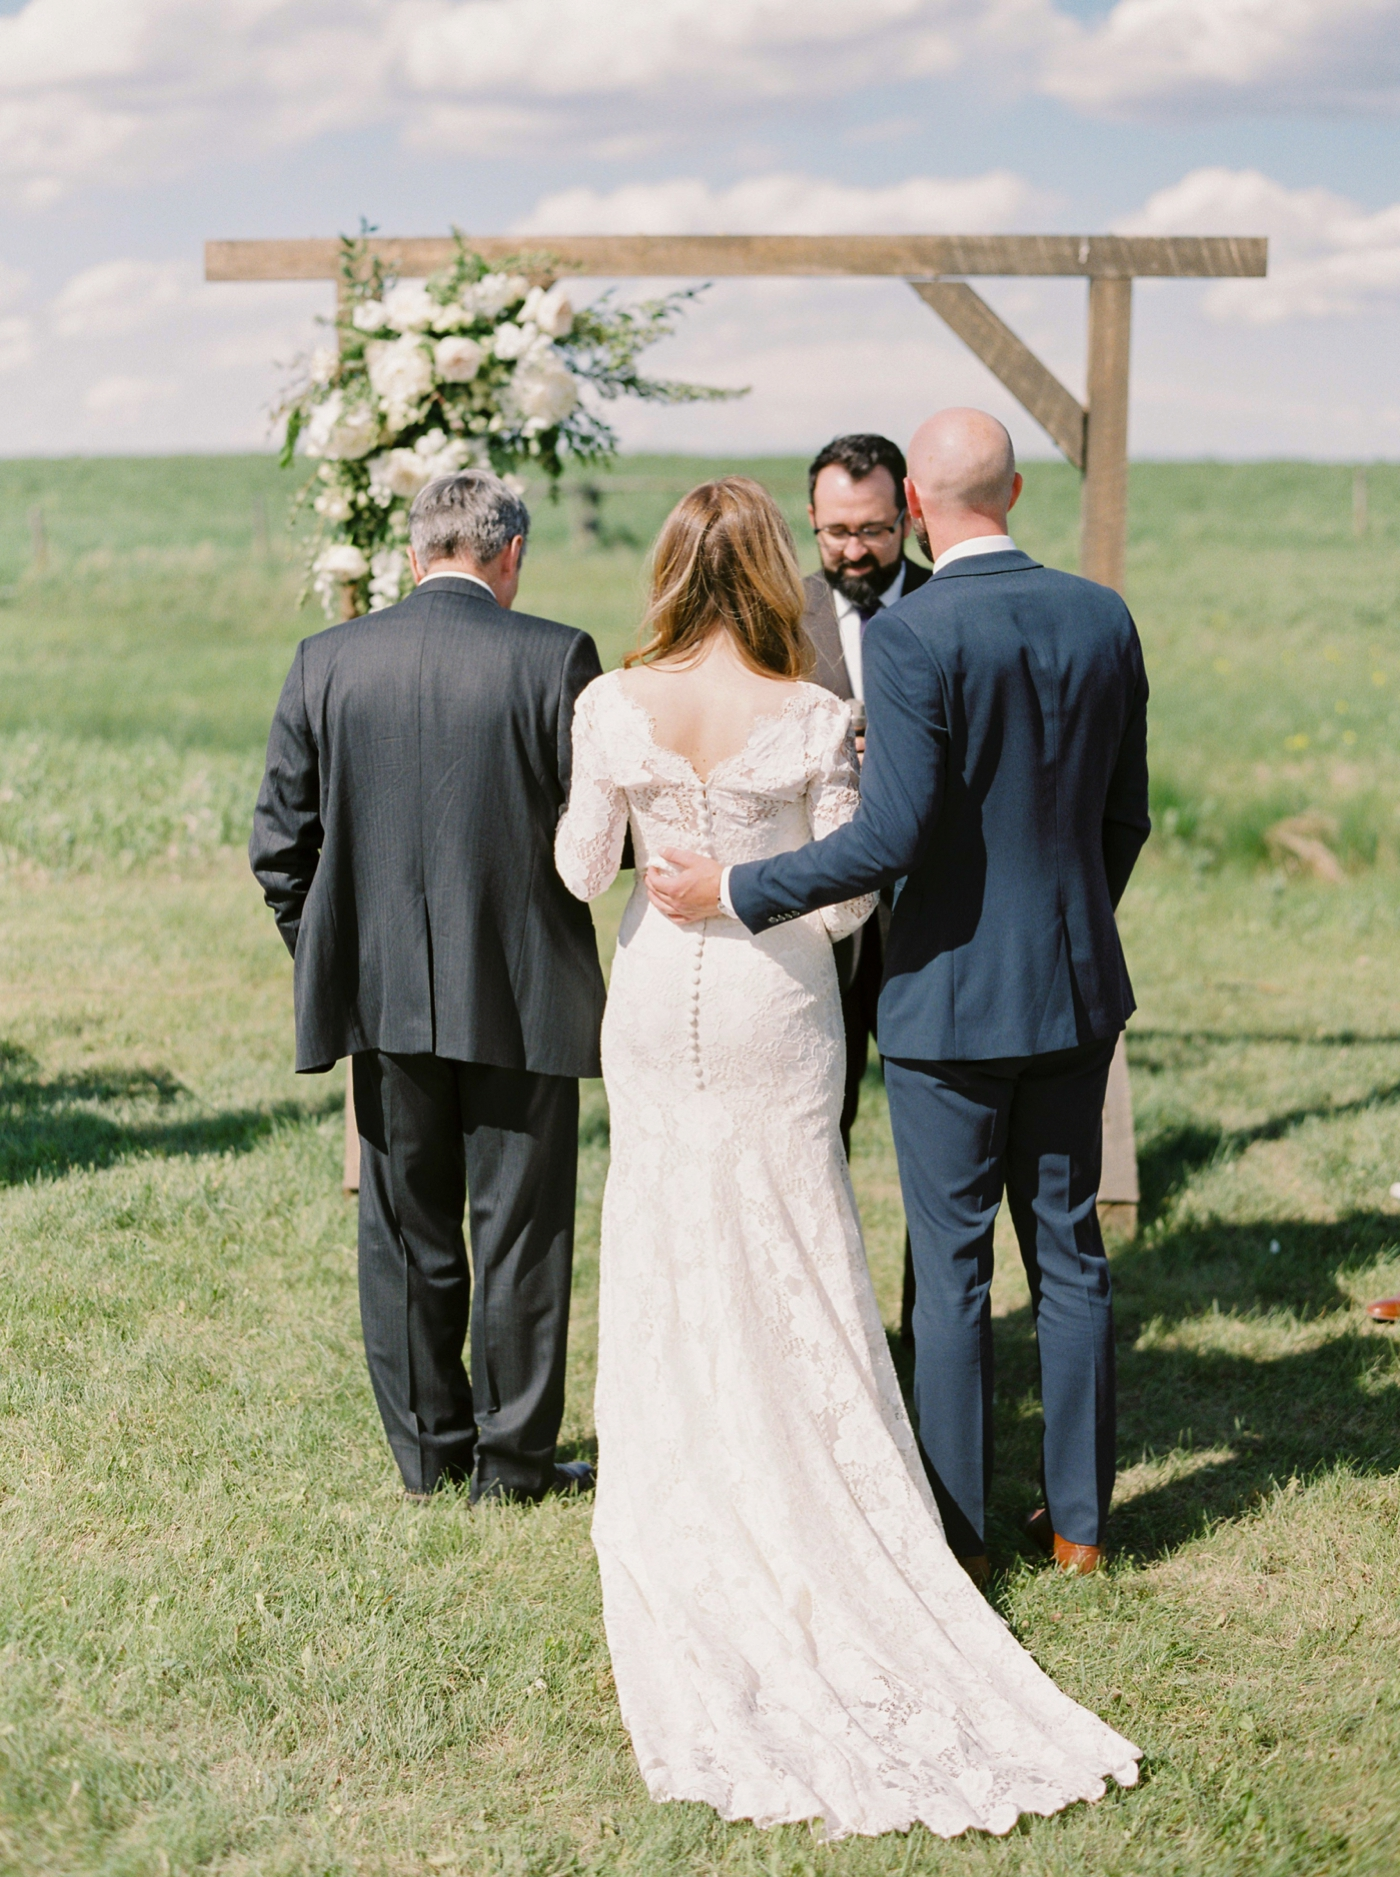 Calgary wedding photographers | The Gathered Farm Wedding | Justine milton fine art film photographer | outdoor farm wedding ceremony